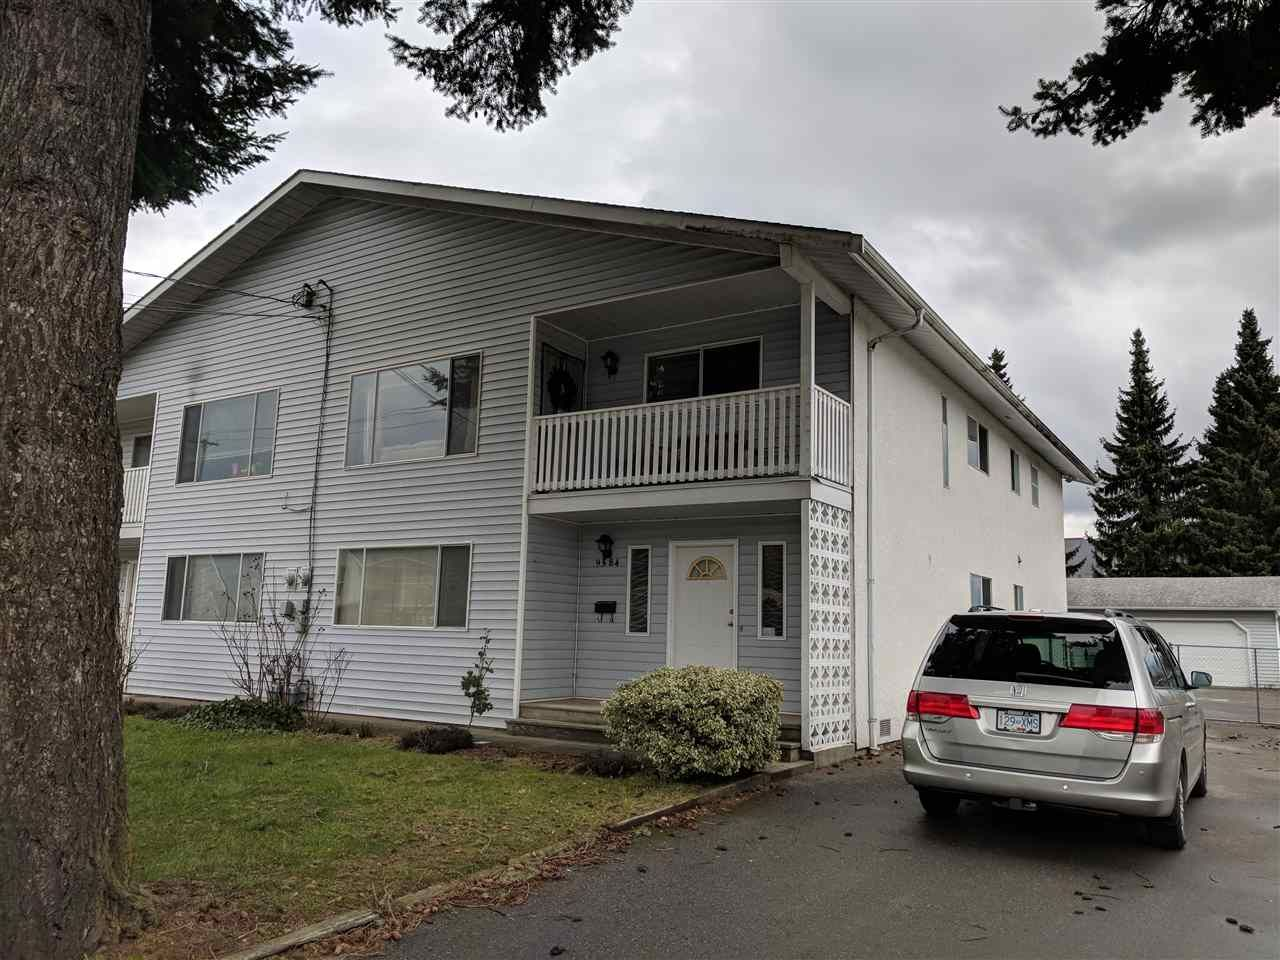 Main Photo: 9584-9586 WILLIAMS STREET in Chilliwack: Chilliwack N Yale-Well Multifamily for sale : MLS®# R2244551